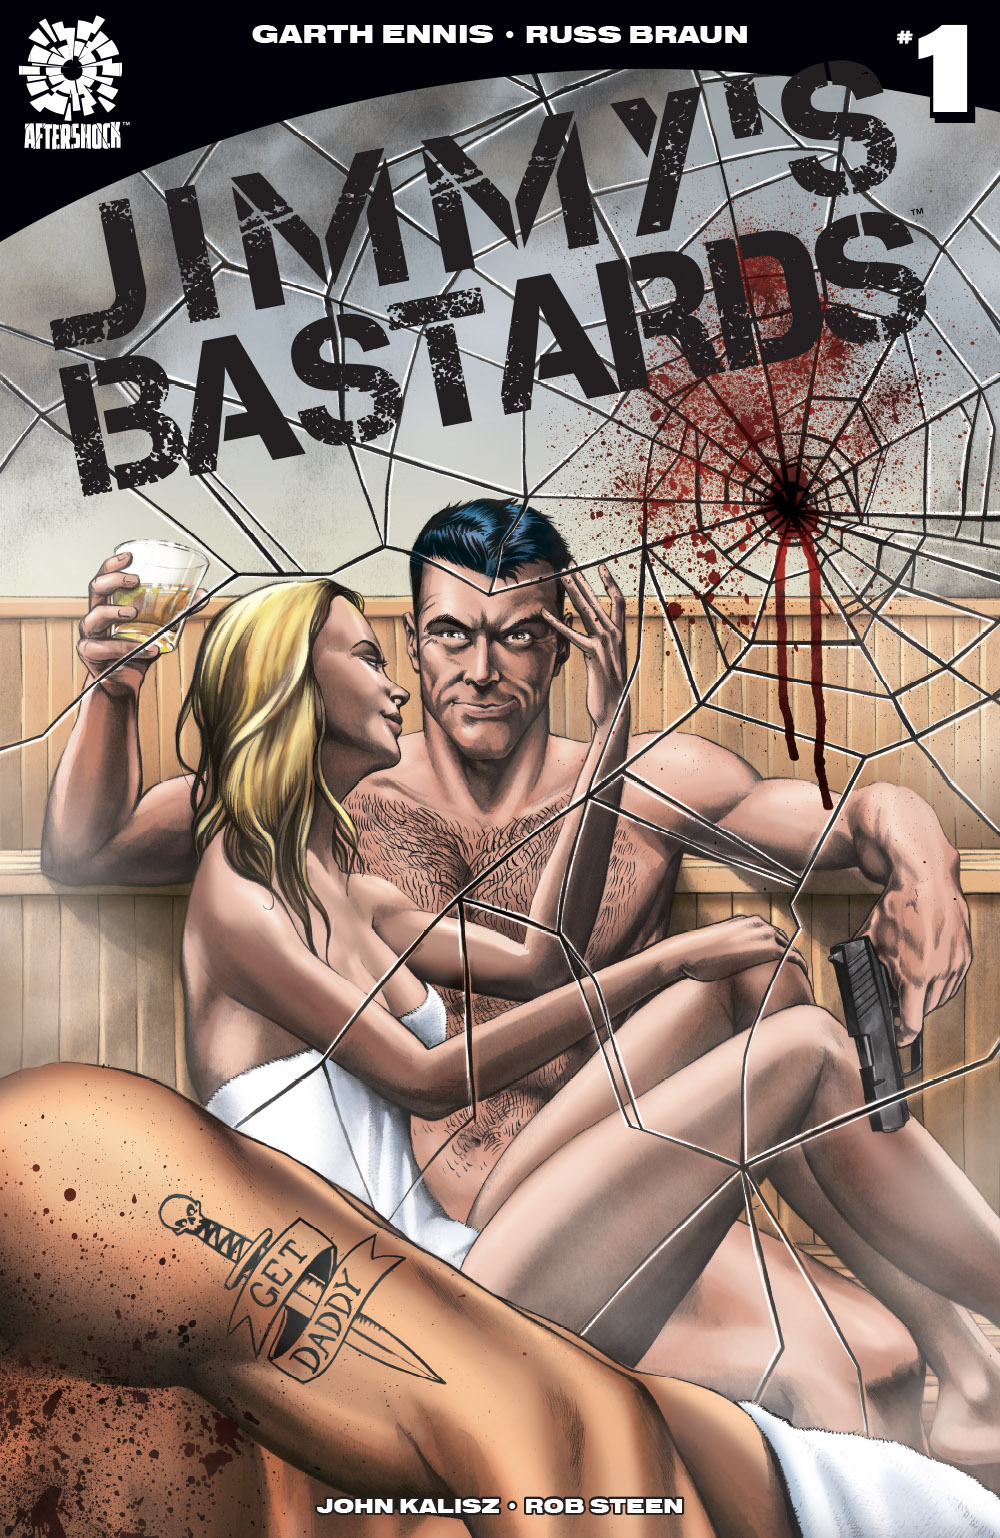 Jimmy's Bastards variant cover, Aftershock Comics